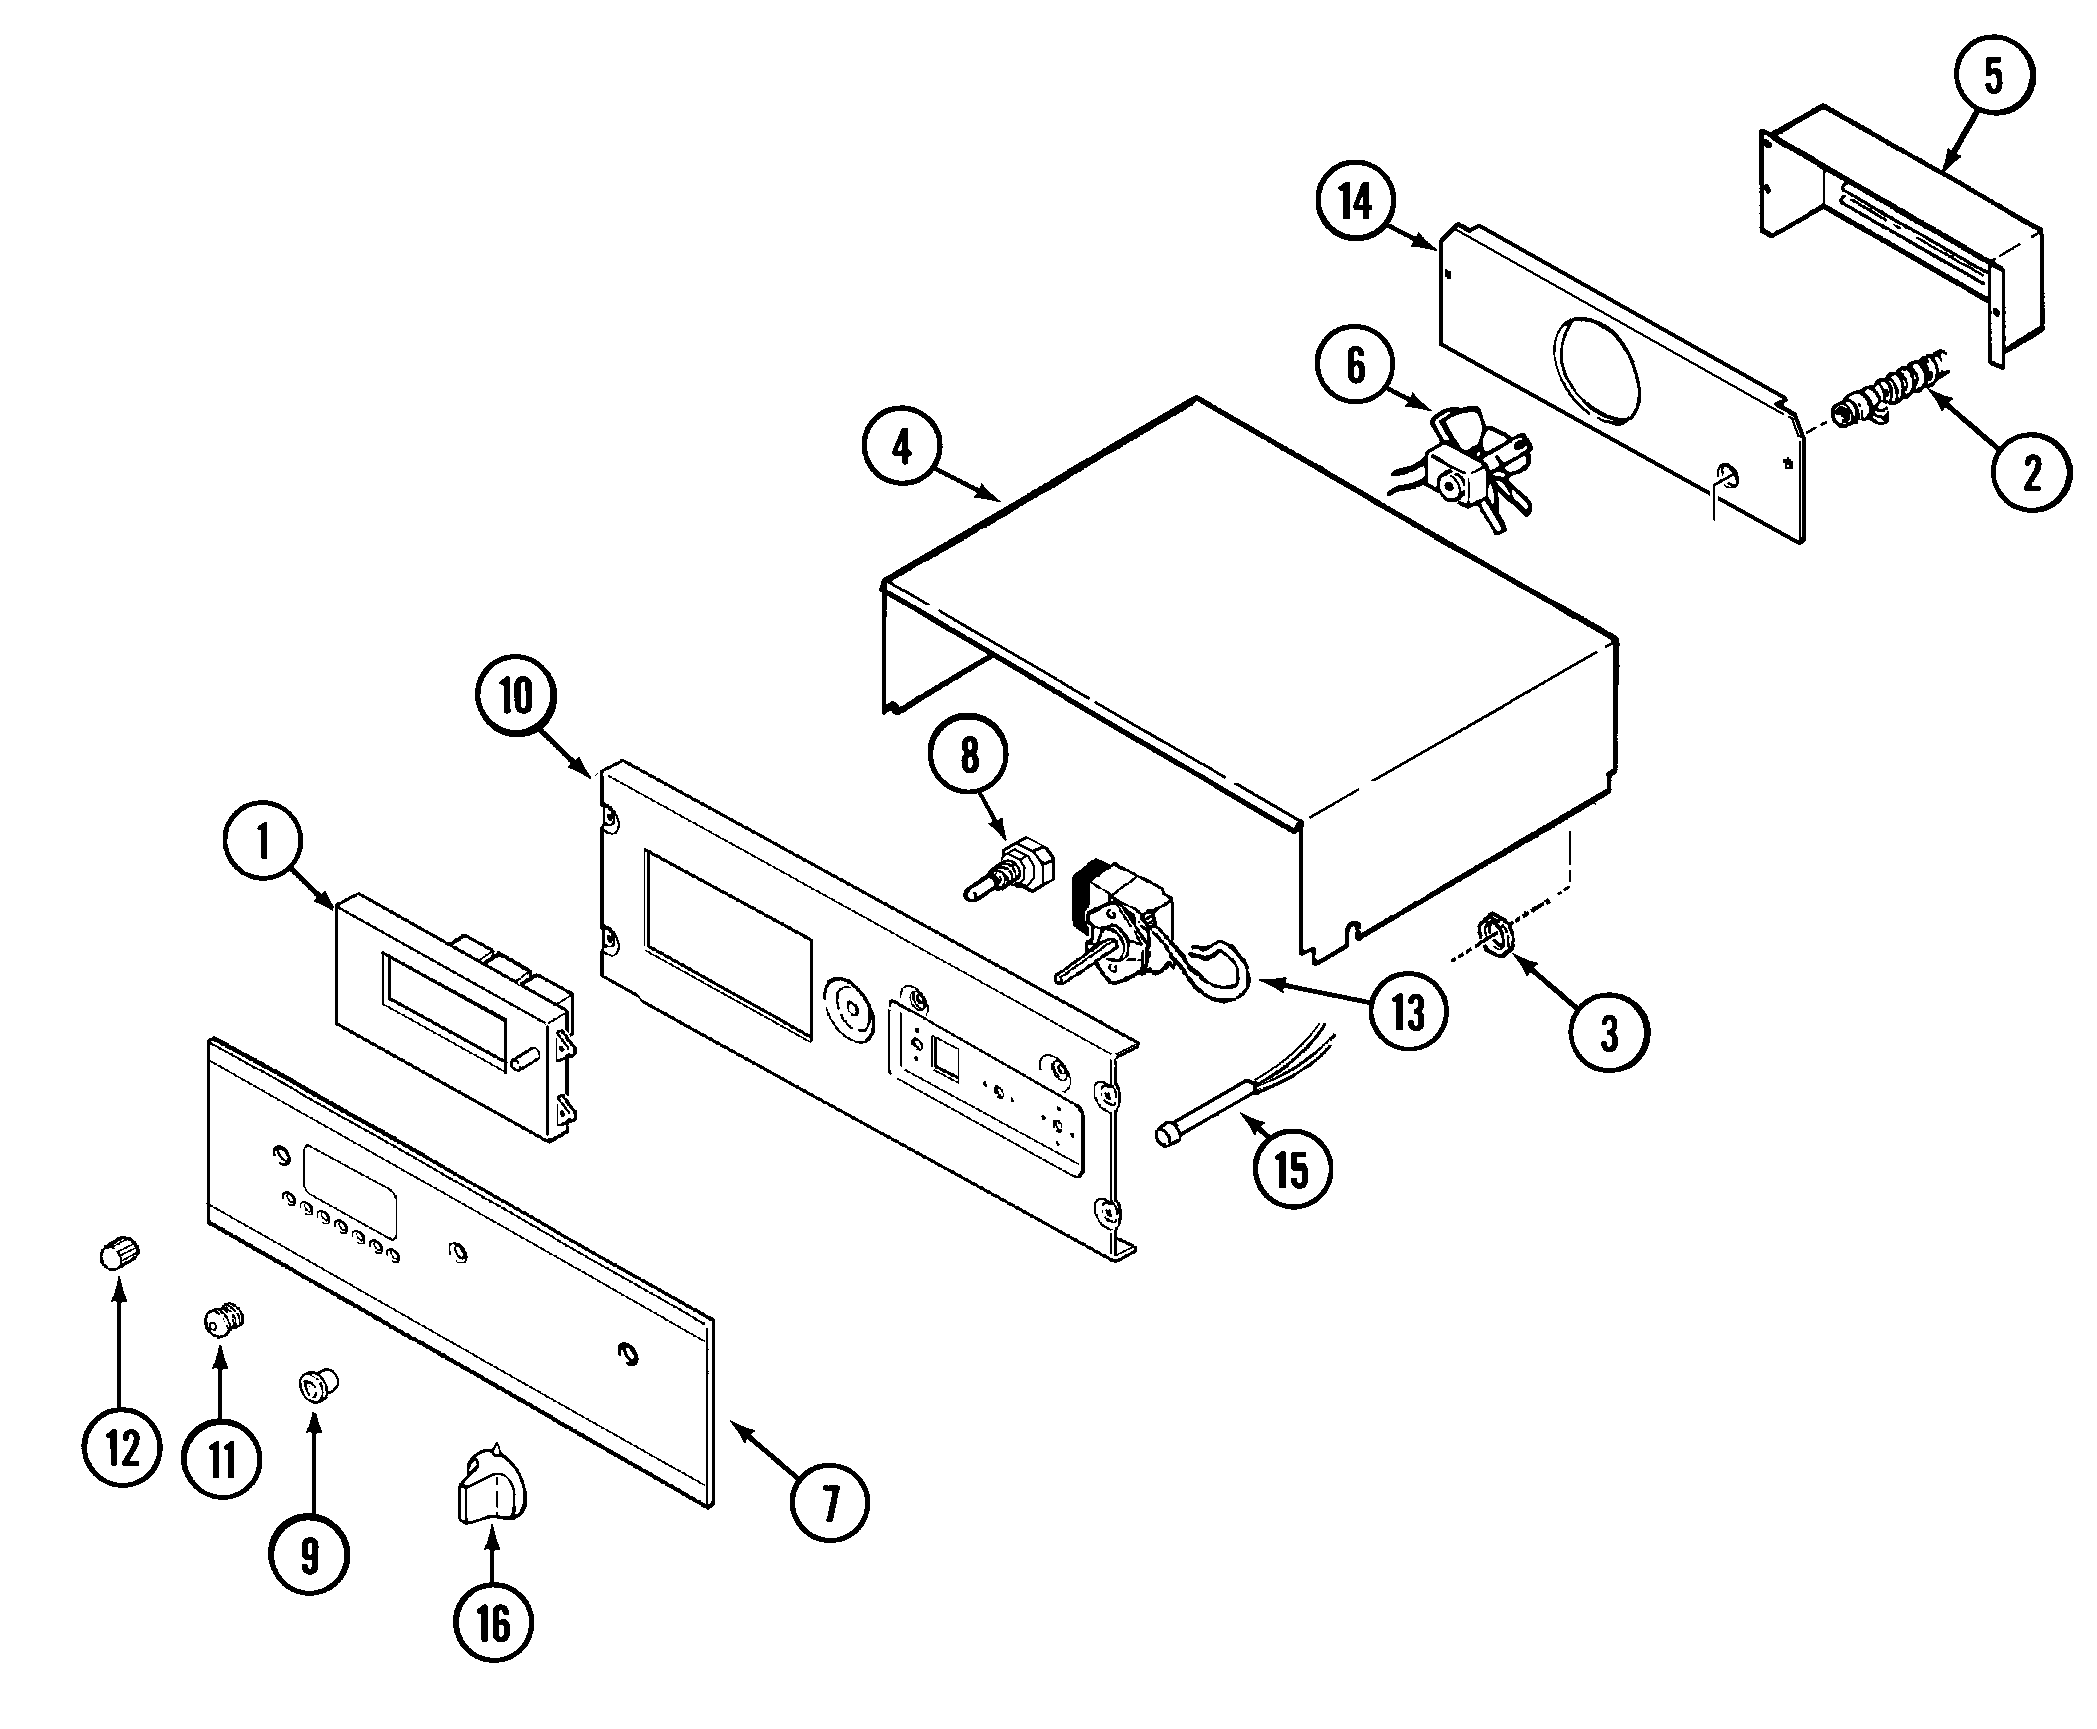 Wiring Diagram For A Trailer With Kes Diagrams Images Rv